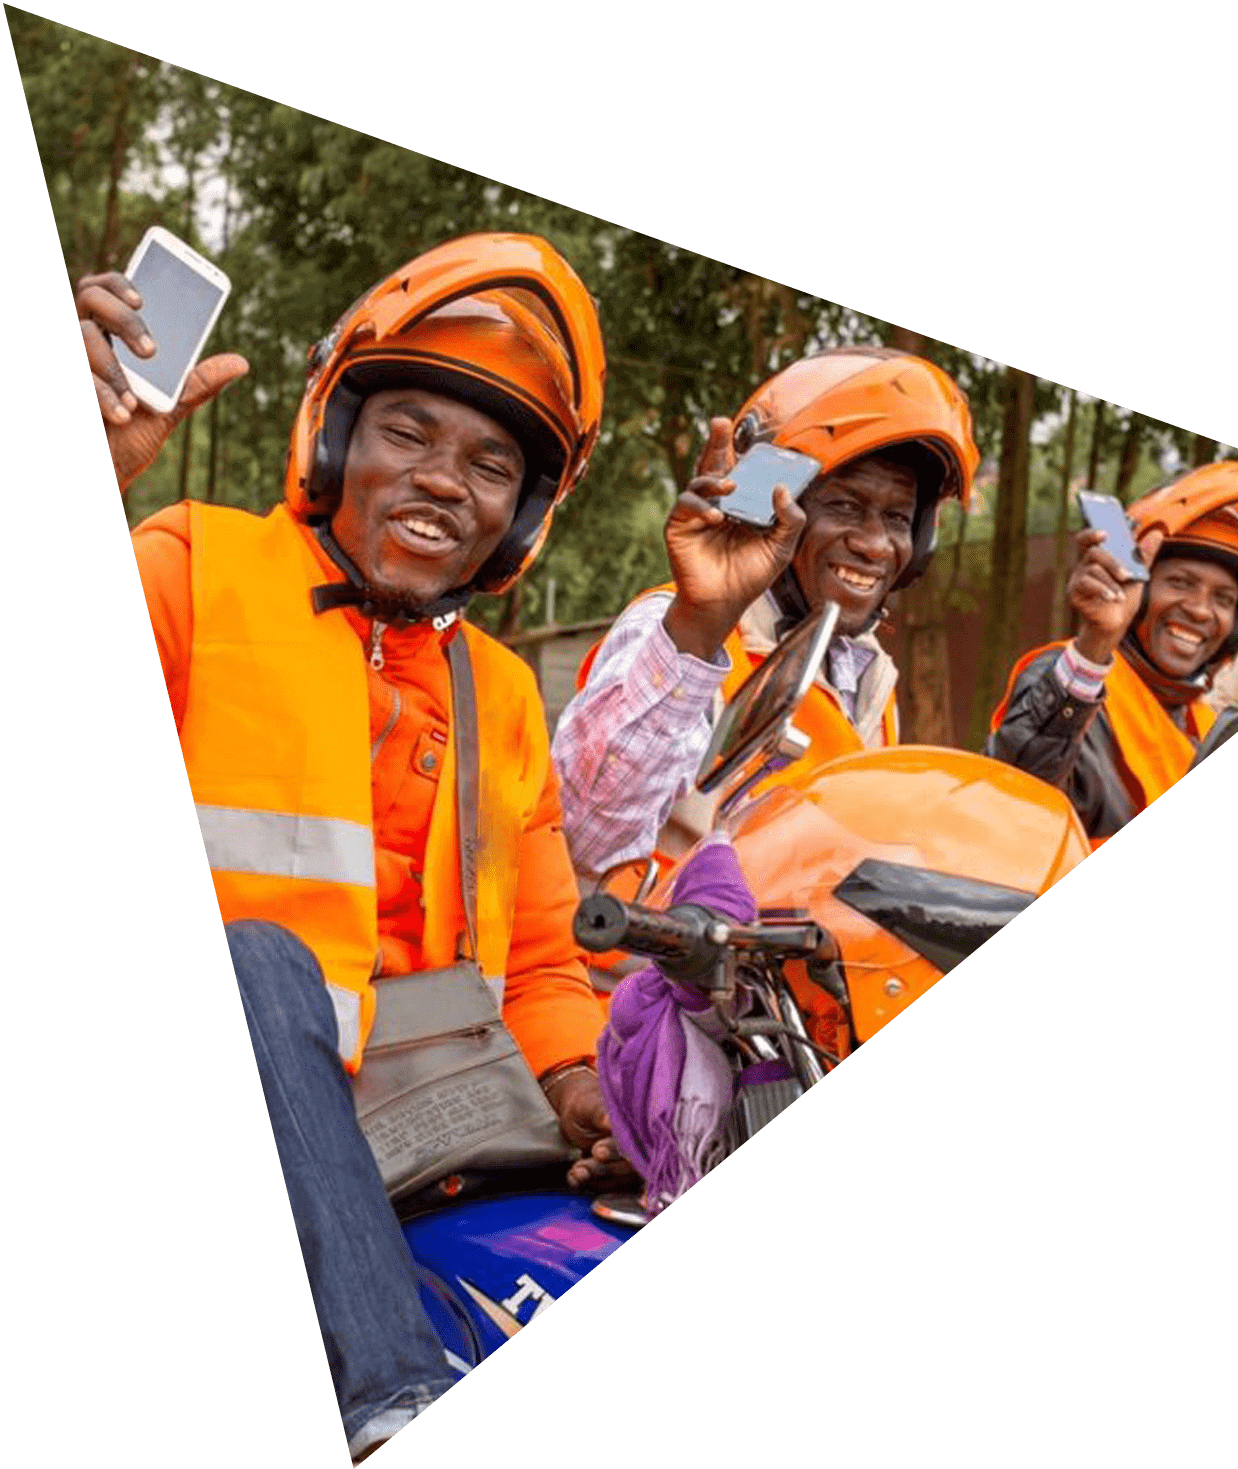 https://pioneercredit.co.ke/wp-content/uploads/2020/02/boda-boda-loans-min.png